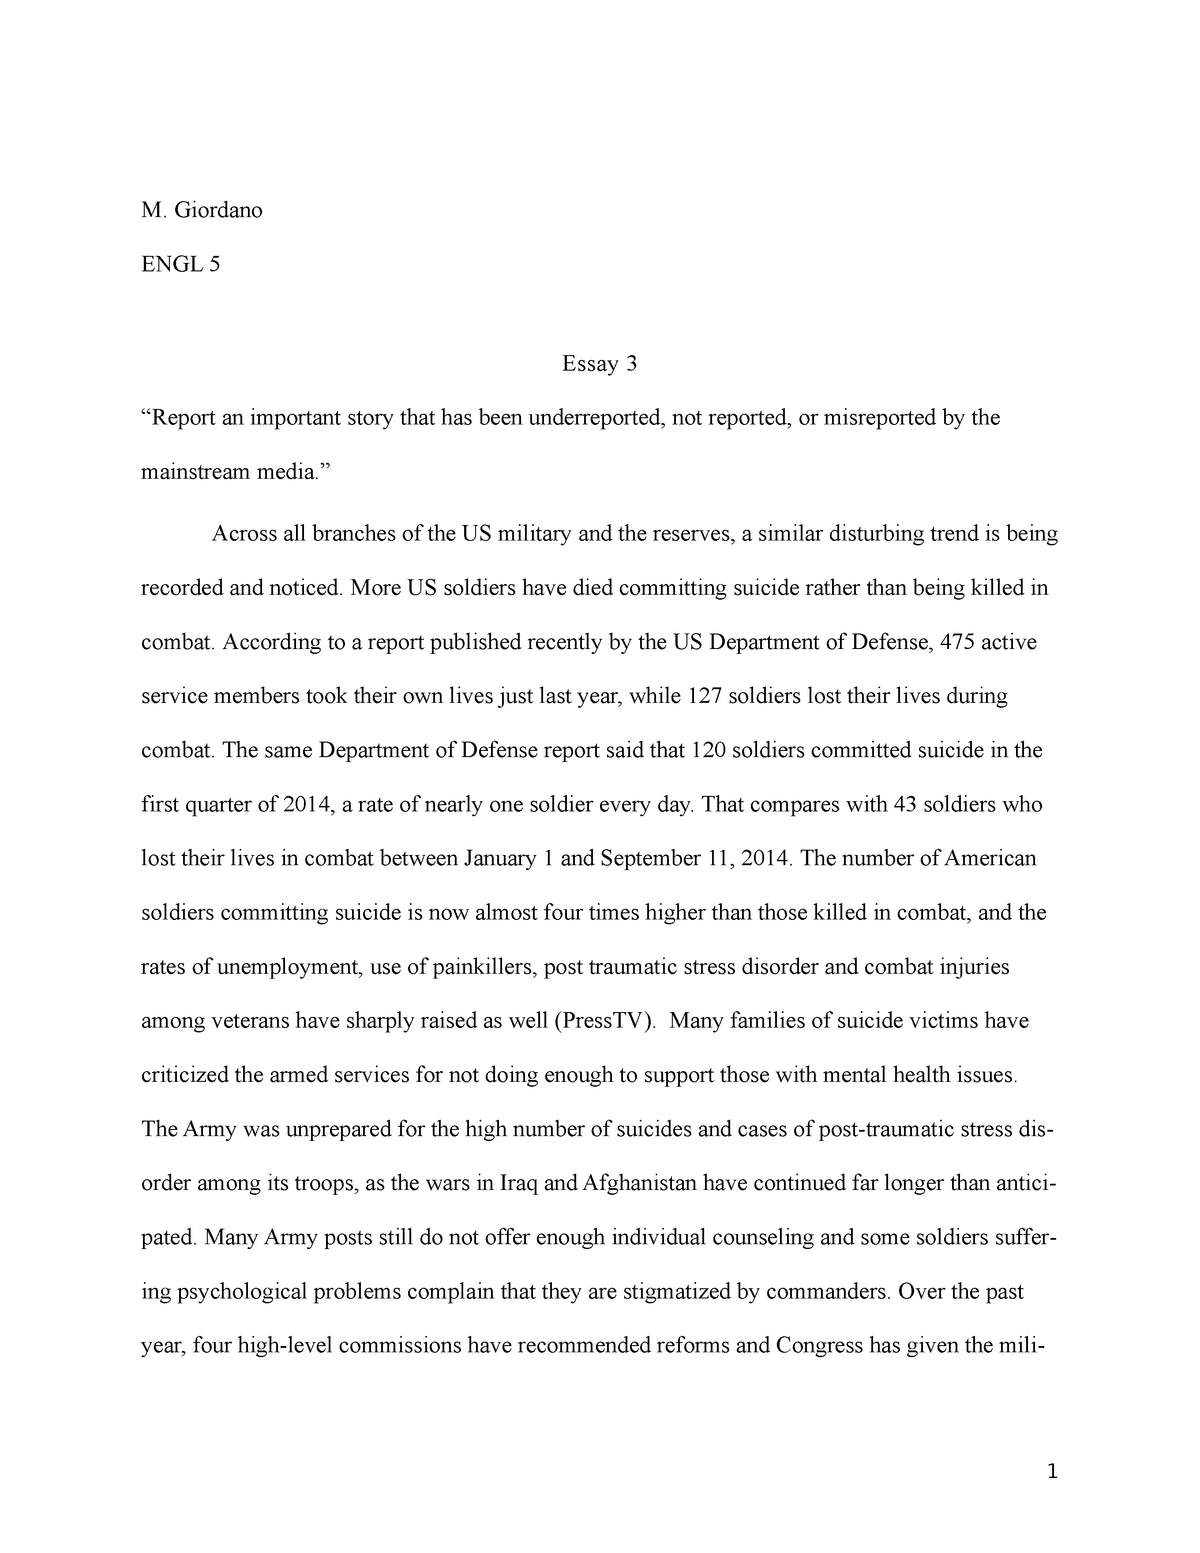 Essay Thesis Statement Generator  How To Write A Proposal Essay Example also High School Essays Engl A Essay   Grade A  Engl A College Composition  Essays Topics In English